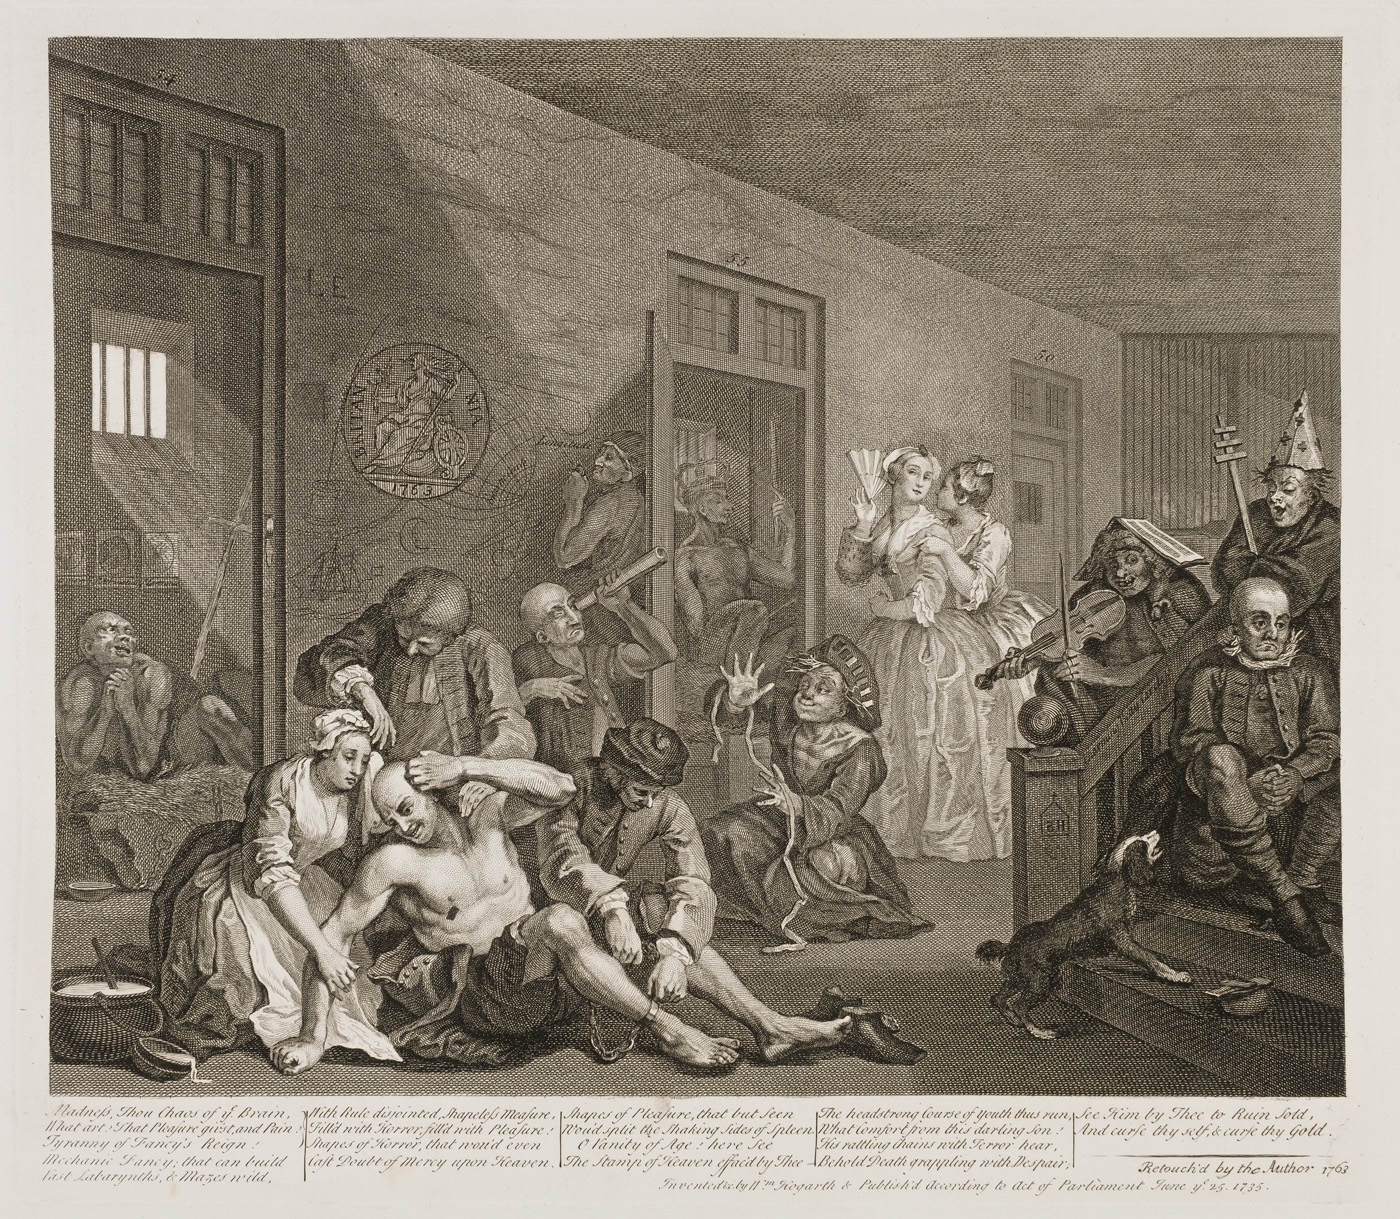 William Hogarth - The Rake's Progress plate 8